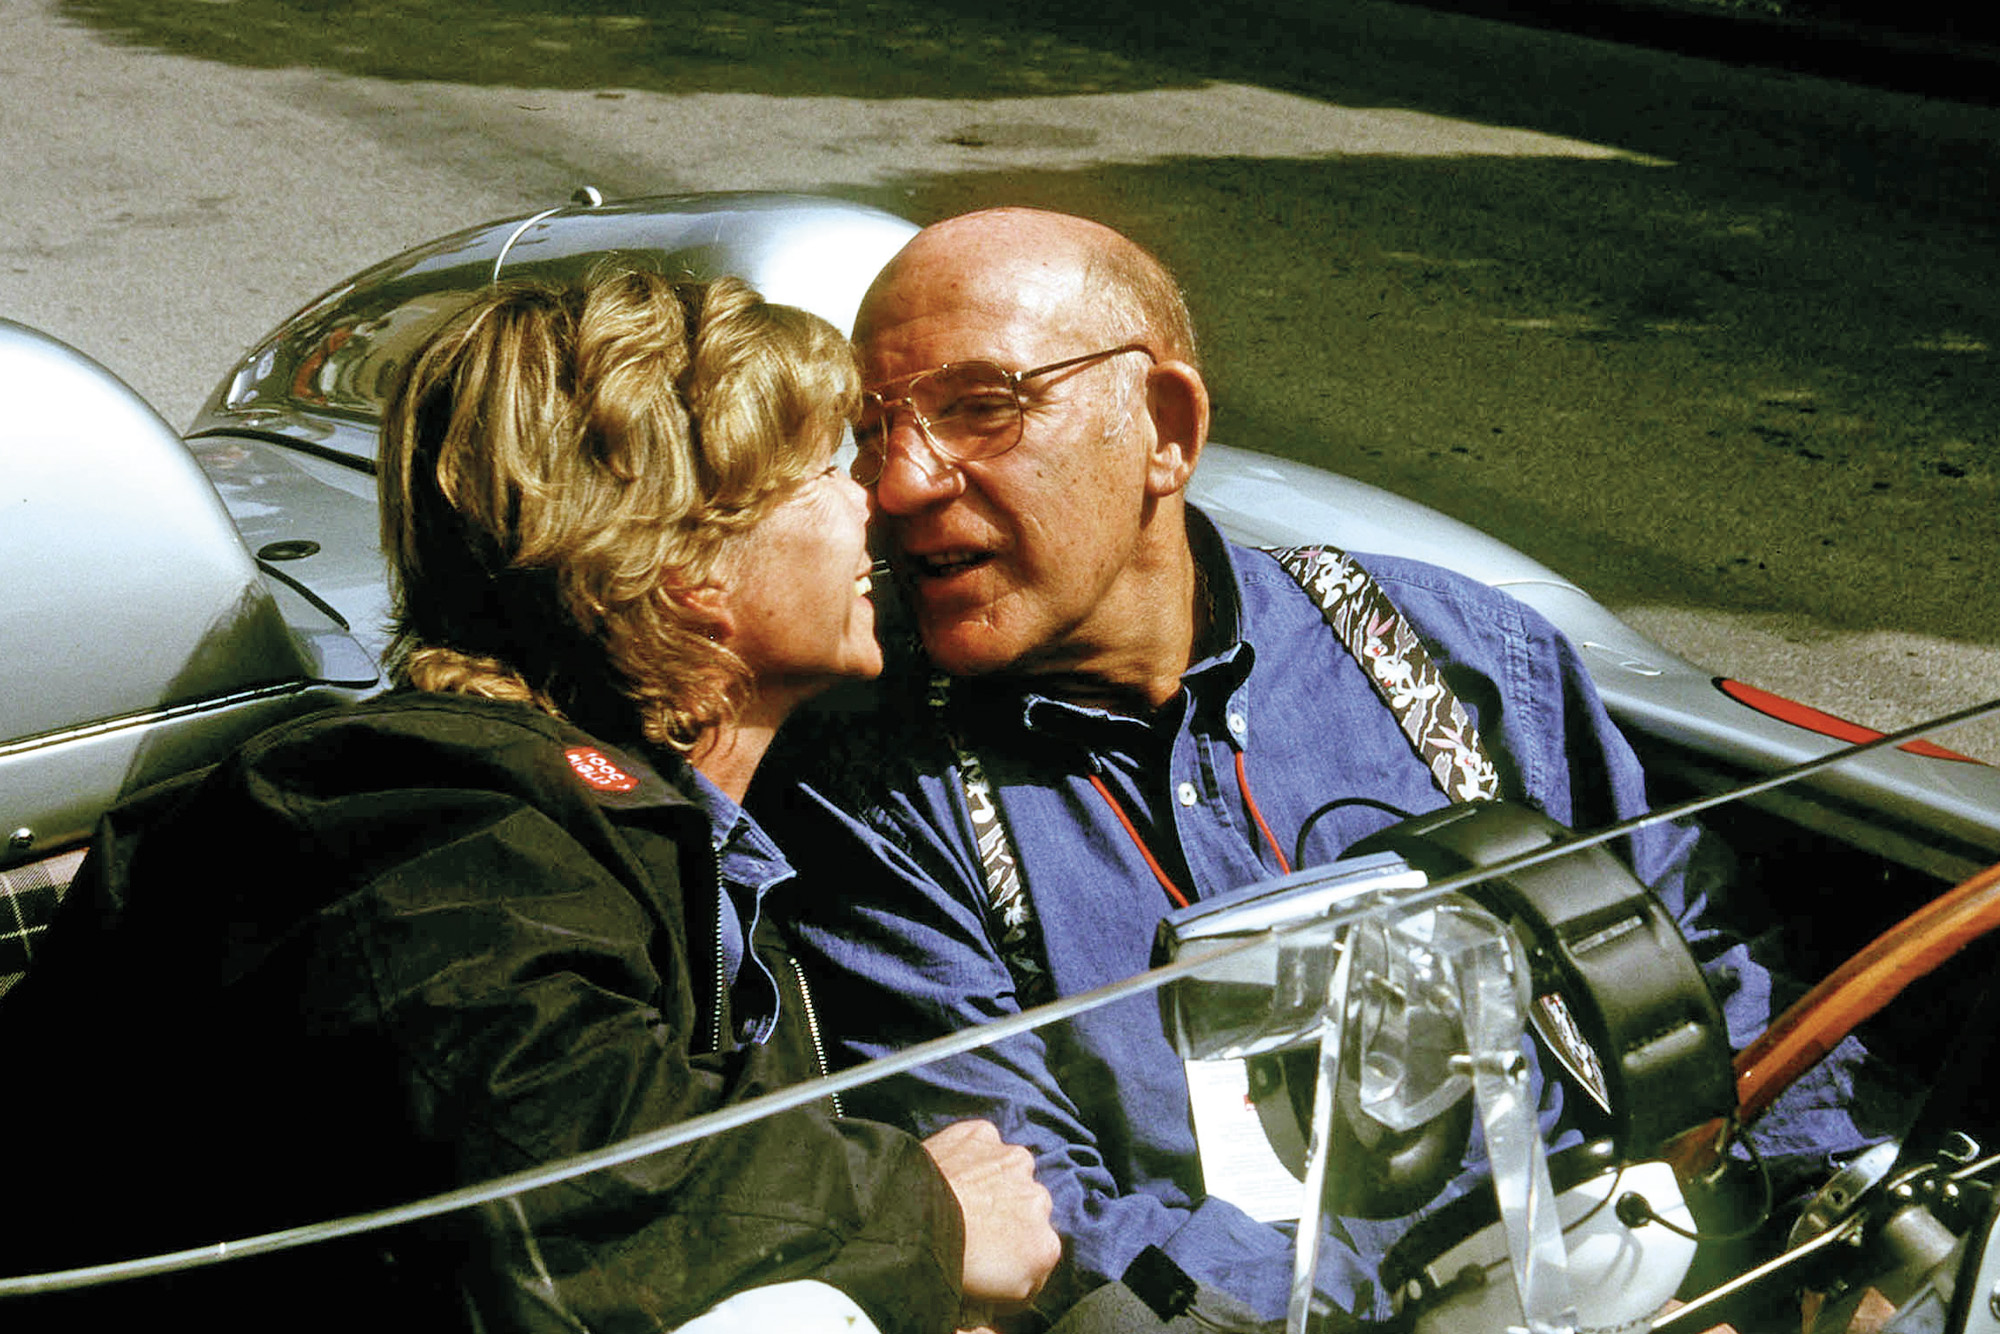 Stirling Moss with Susie Moss